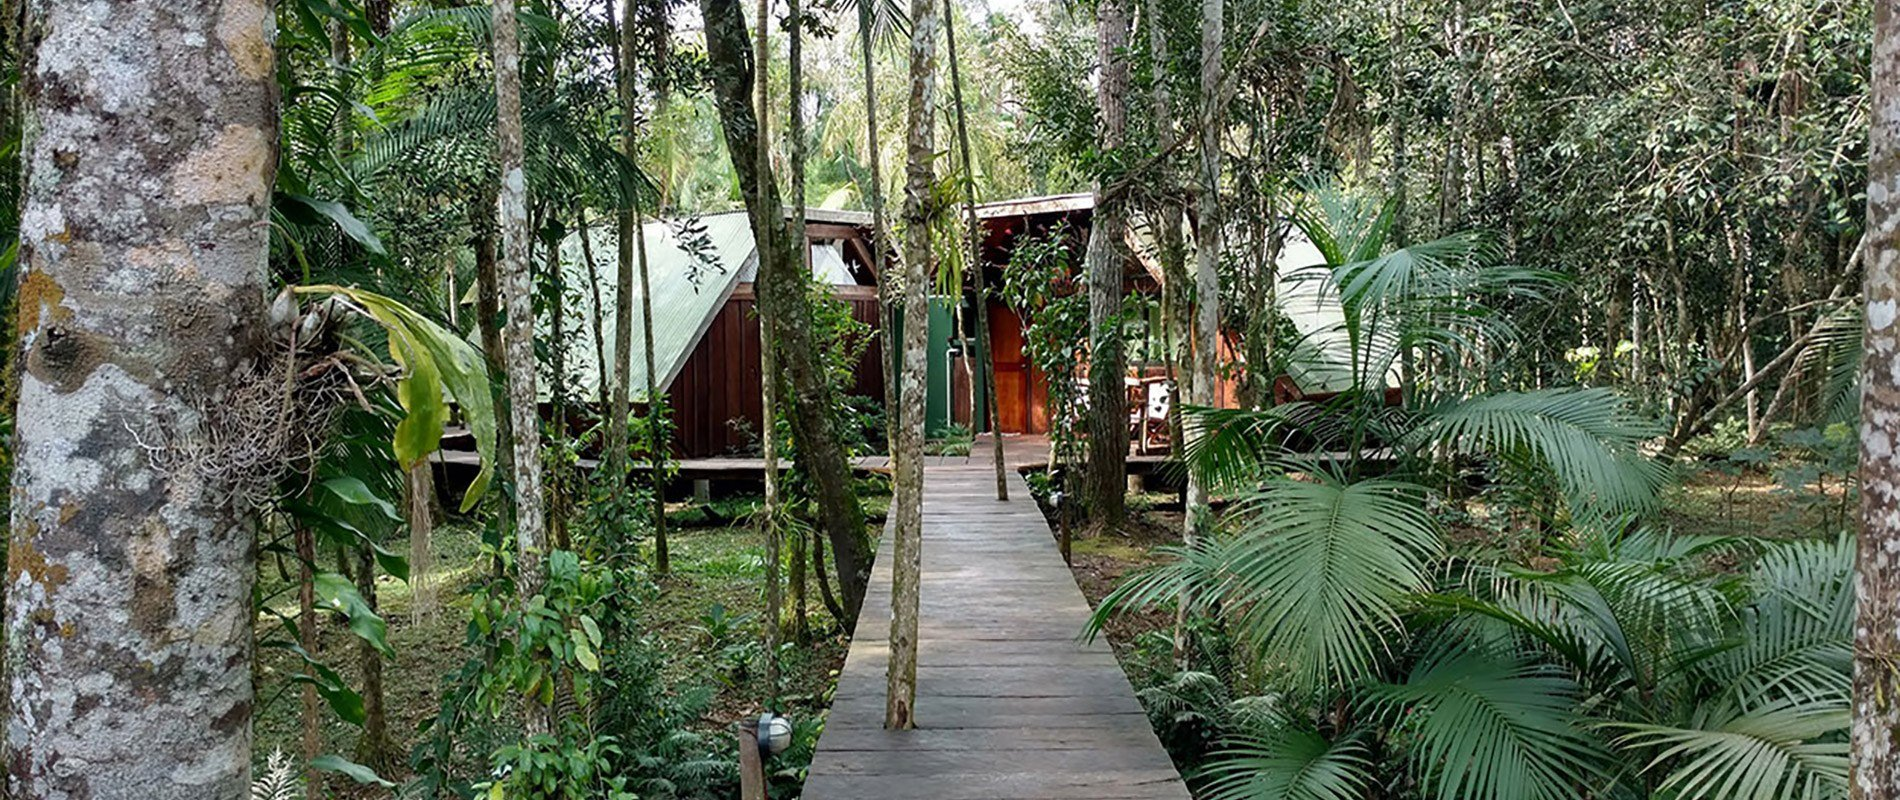 ecolodge iguazu argentine bresil jungle